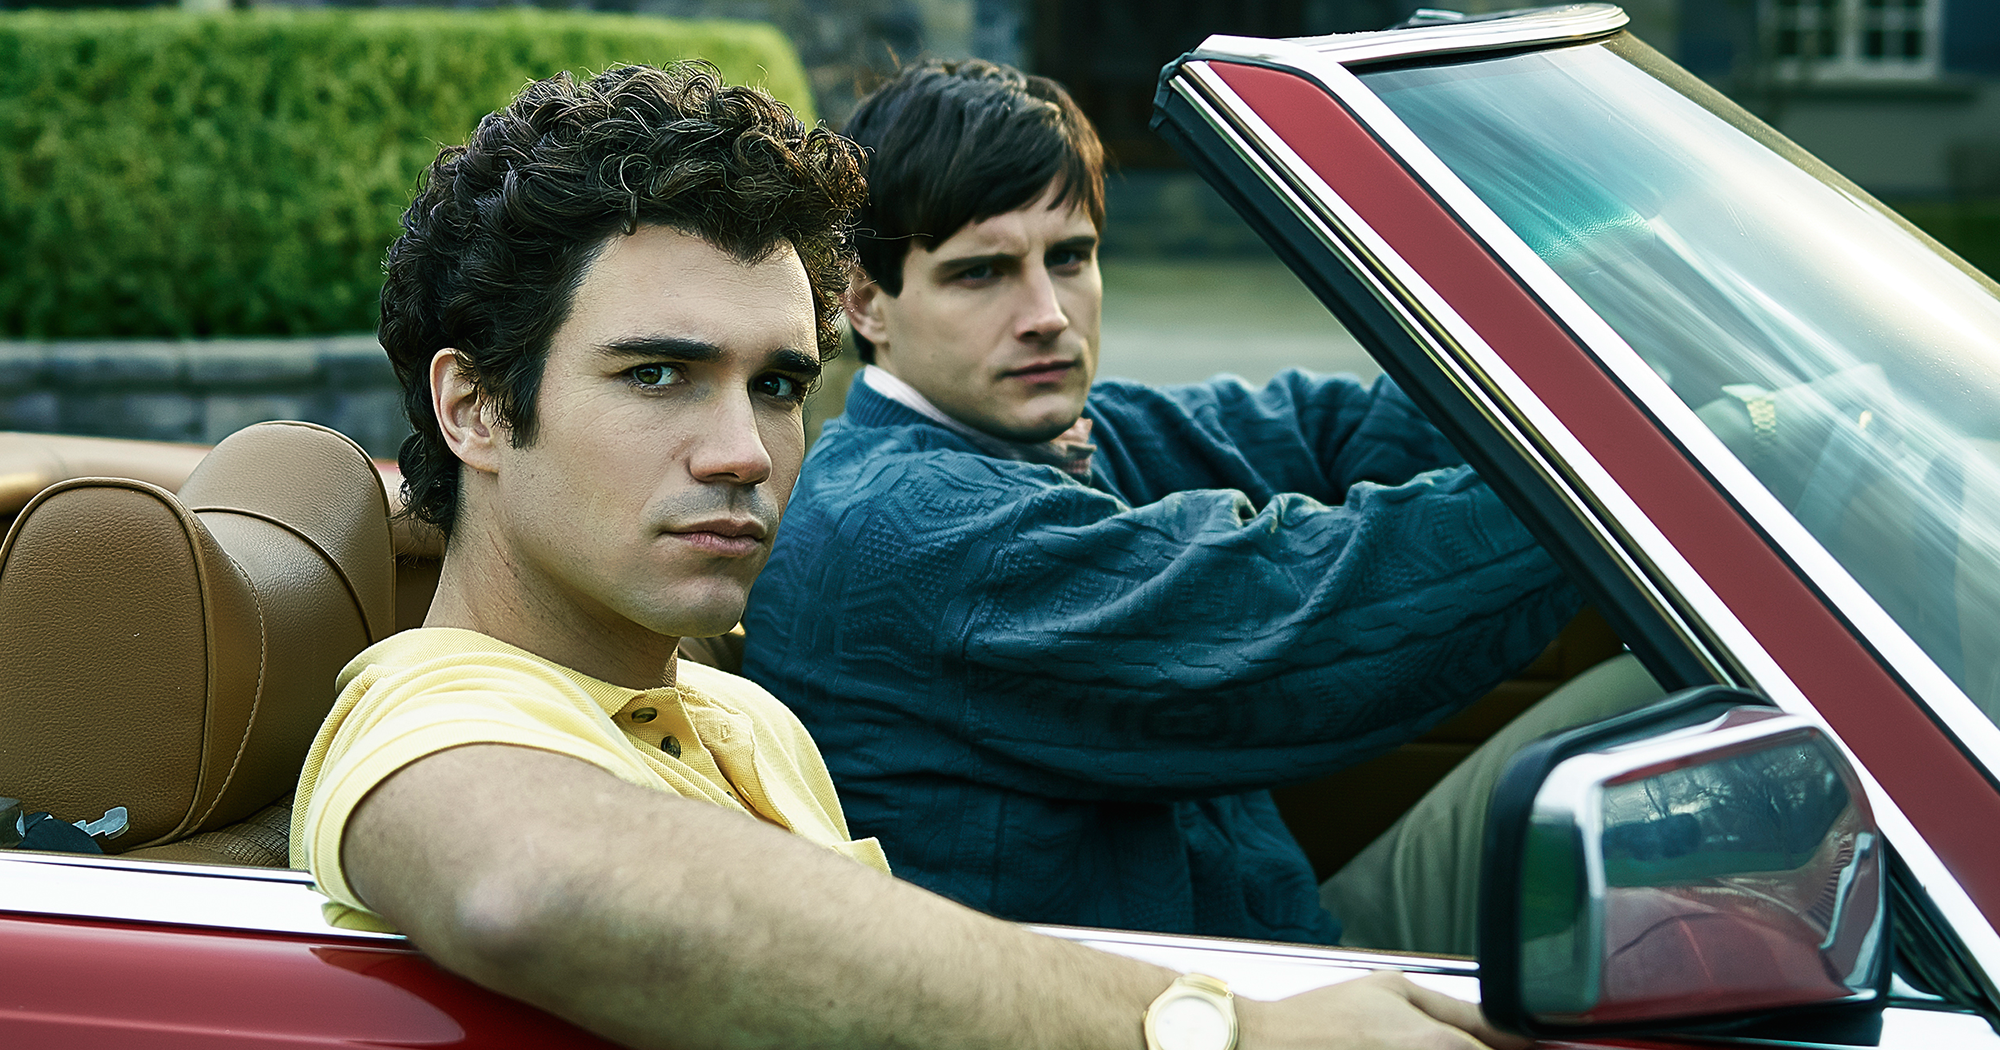 This menendez brothers image sees the murders